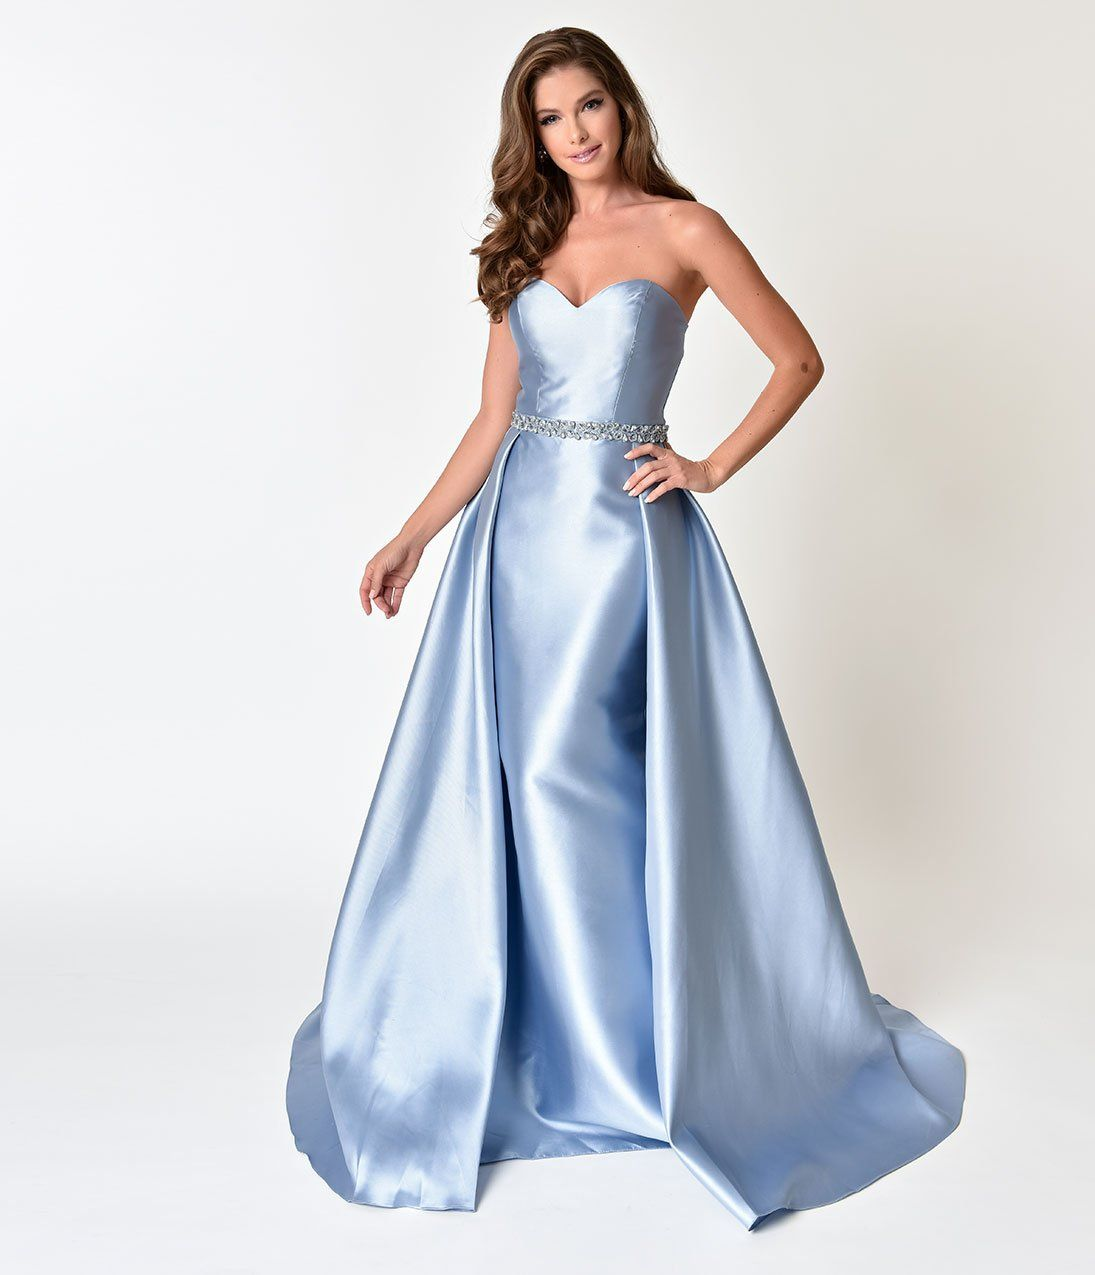 50s Formal Evening Gowns Perry Blue Strapless Sweetheart Neckline Satin Prom Gown Sweetheart Prom Dress Hot Pink Prom Dress Evening Dresses Vintage [ 1275 x 1095 Pixel ]